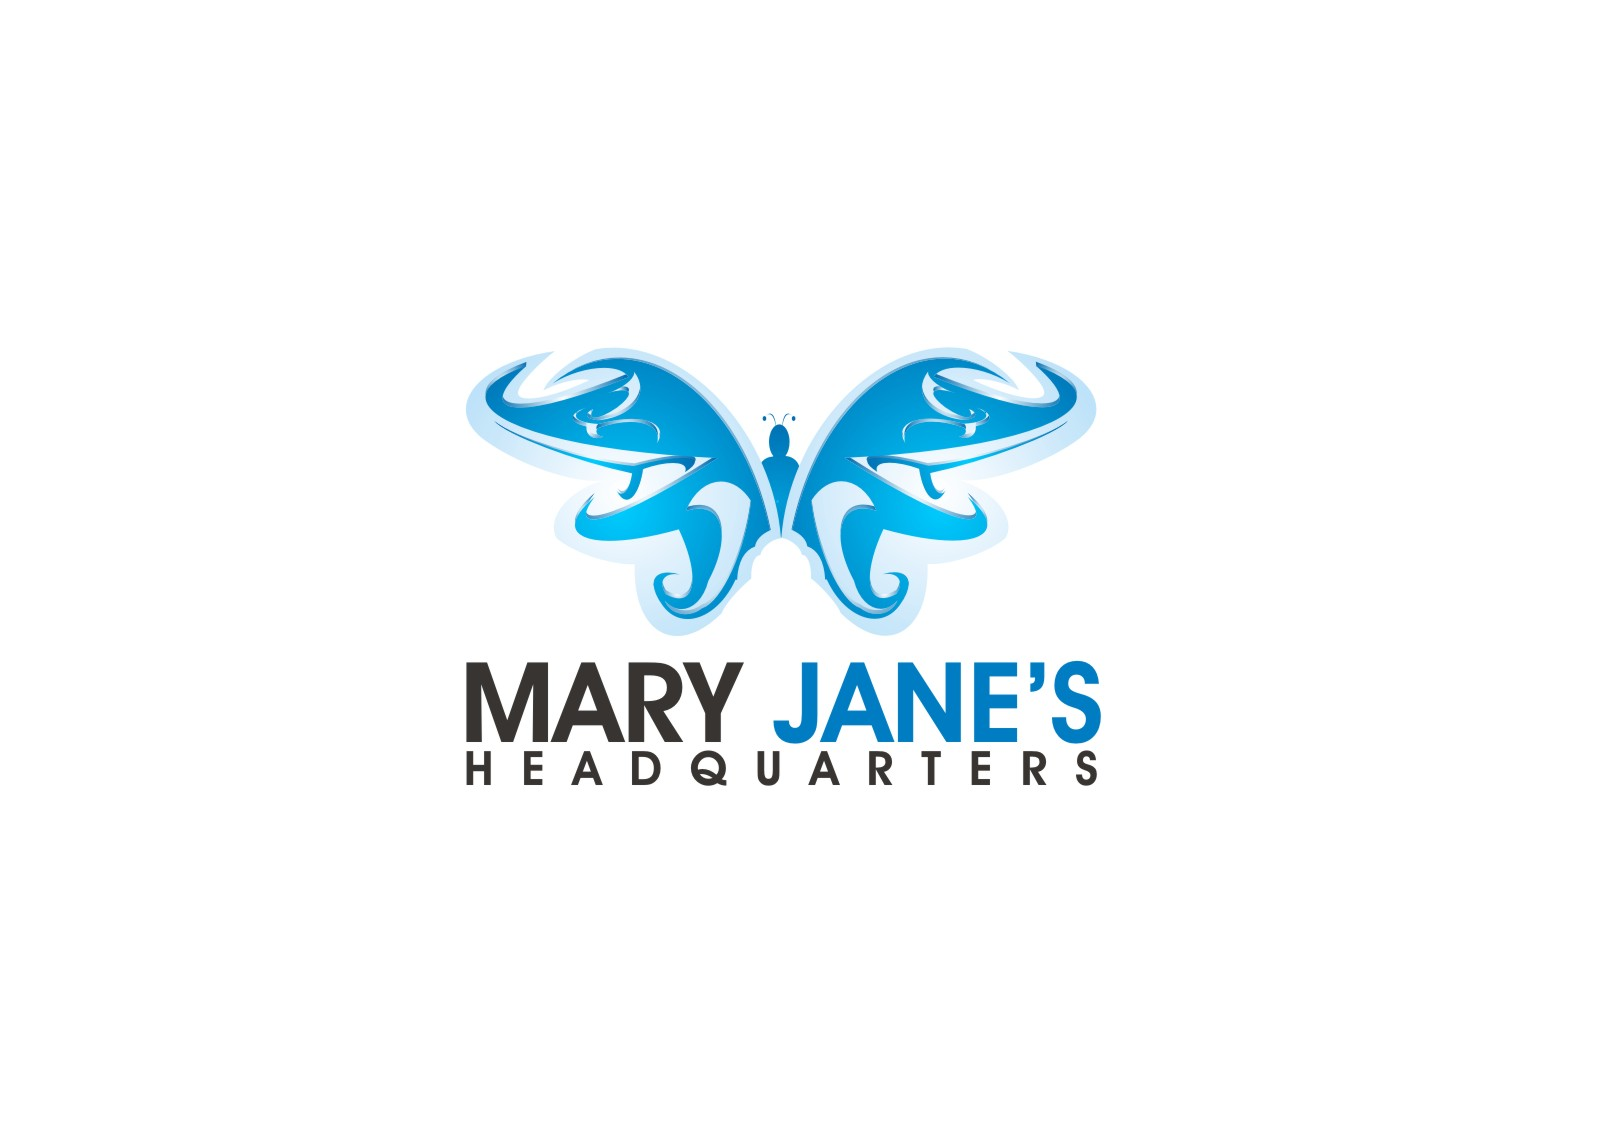 Logo Design by yanxsant - Entry No. 13 in the Logo Design Contest Mary Jane's Headquarters Logo Design.